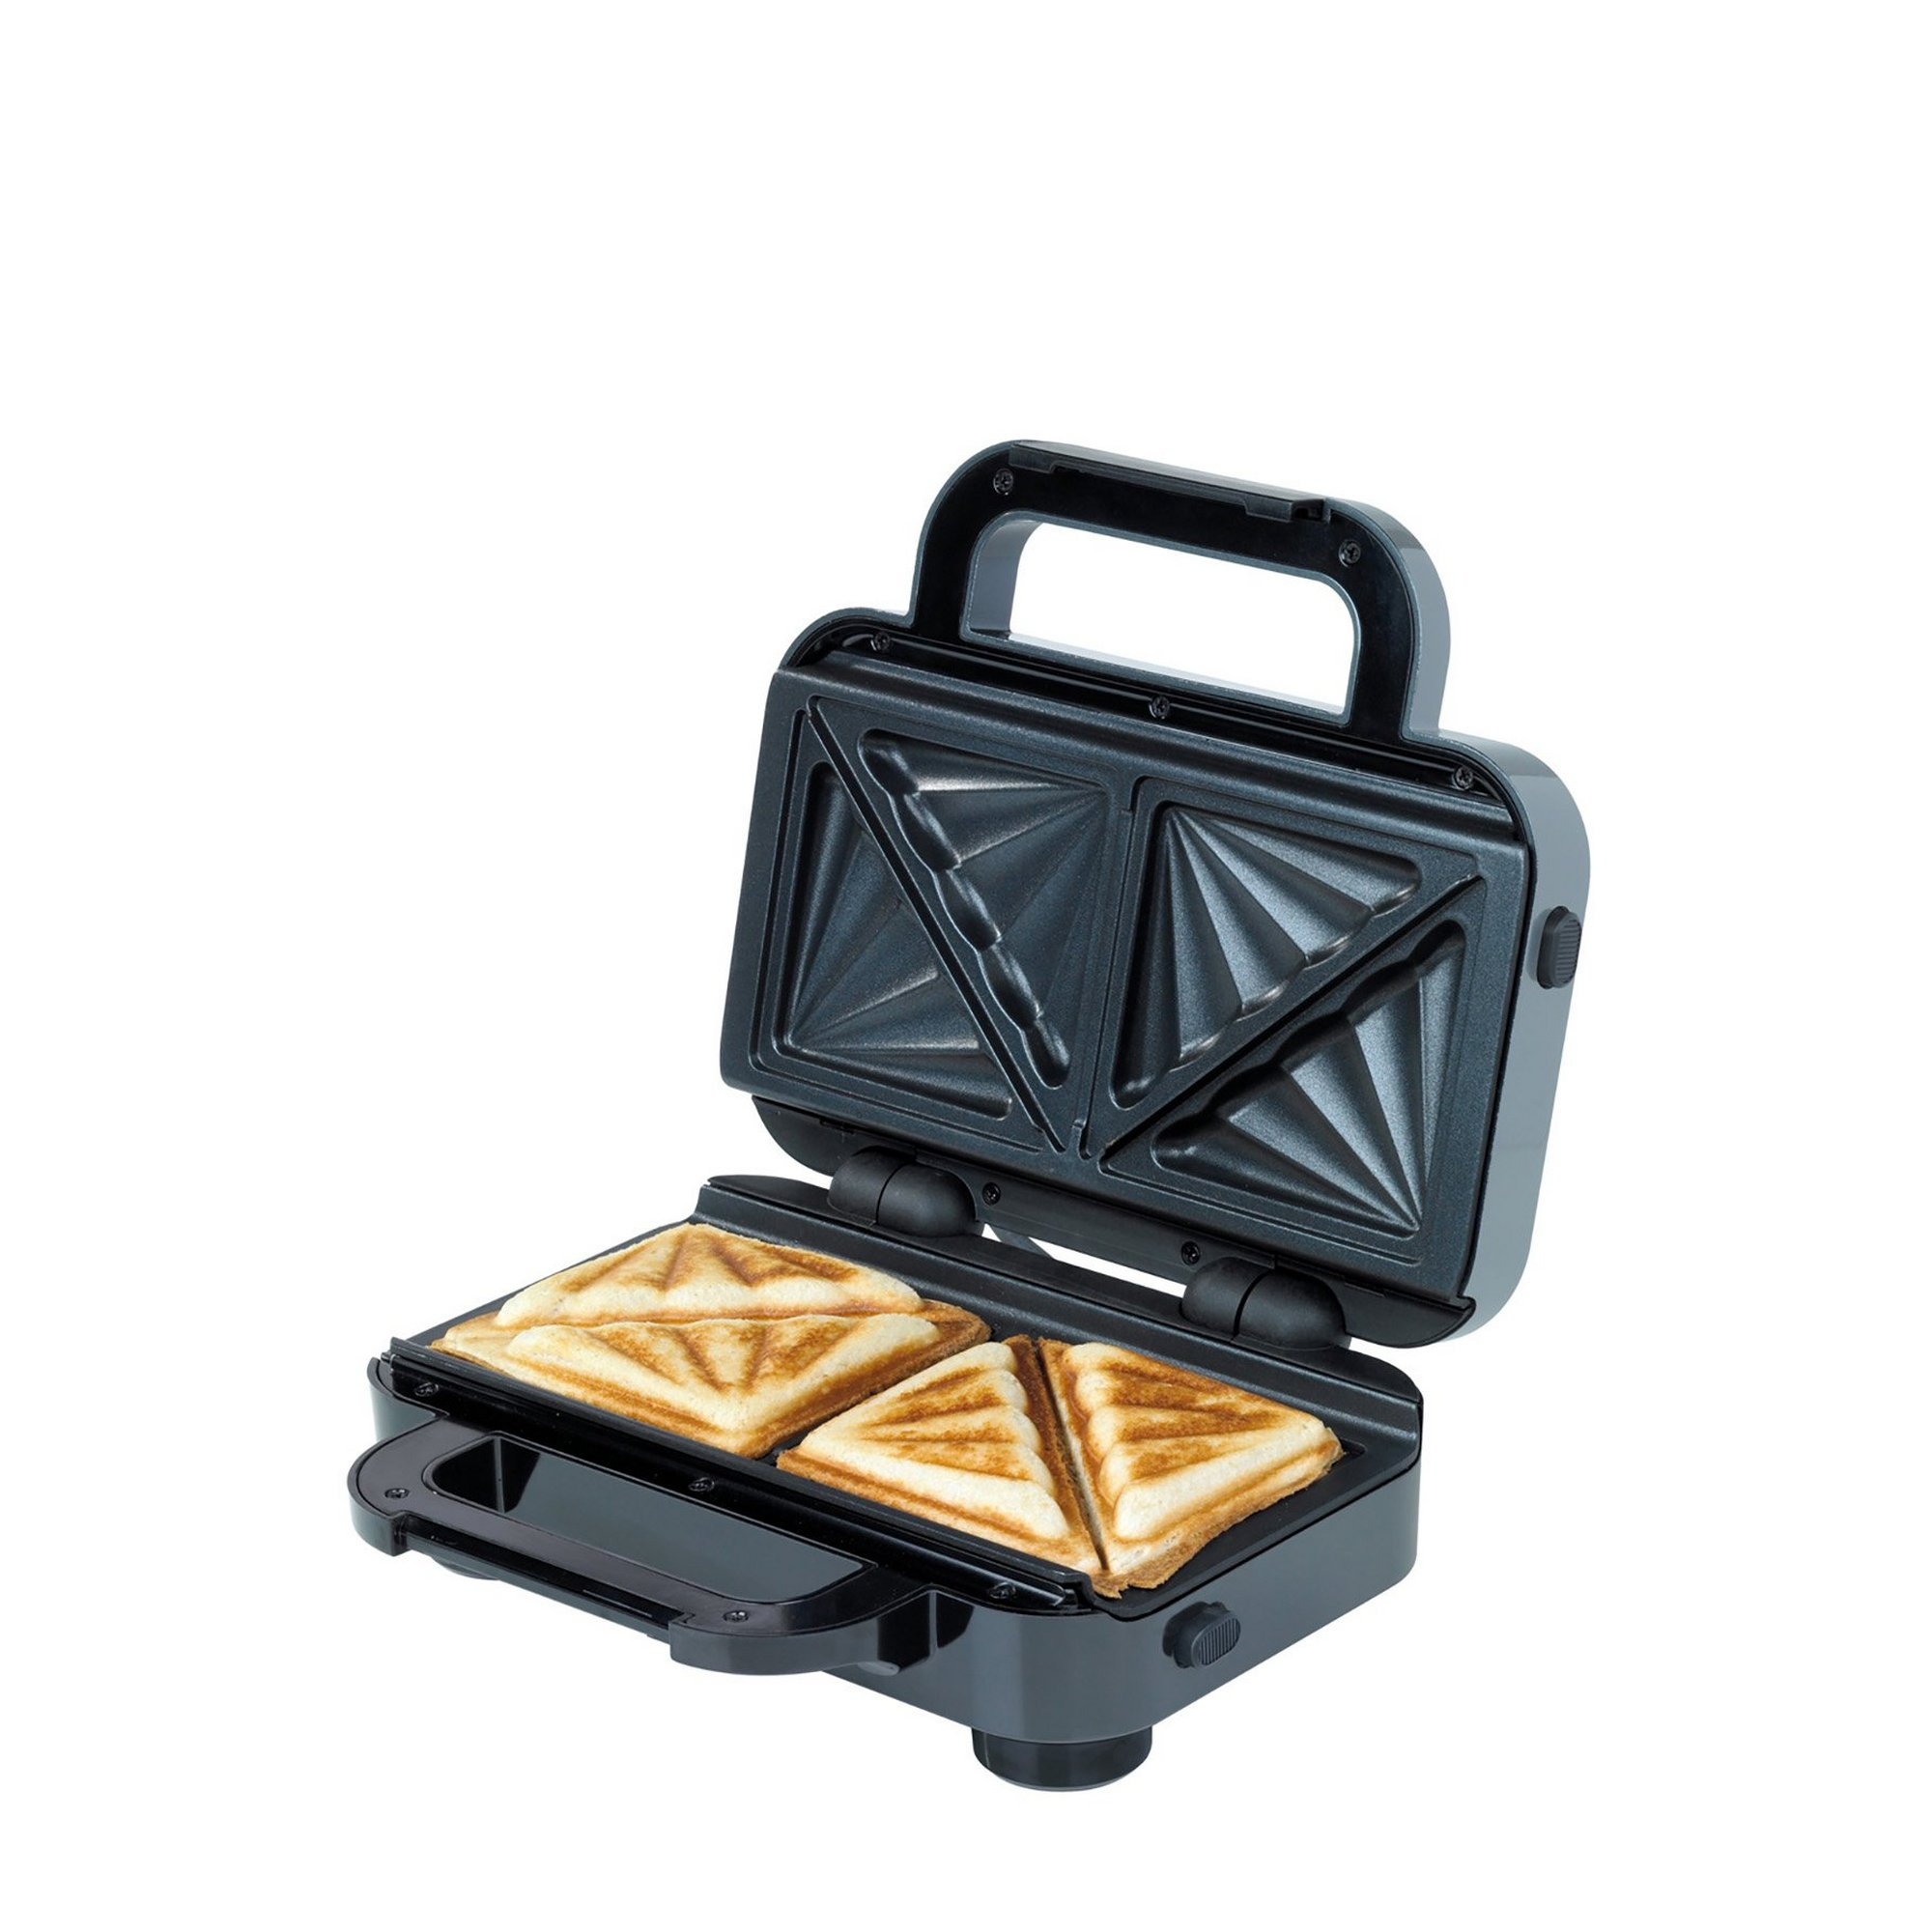 Image of Breville 2 Slice Deep Fill Sandwich Maker